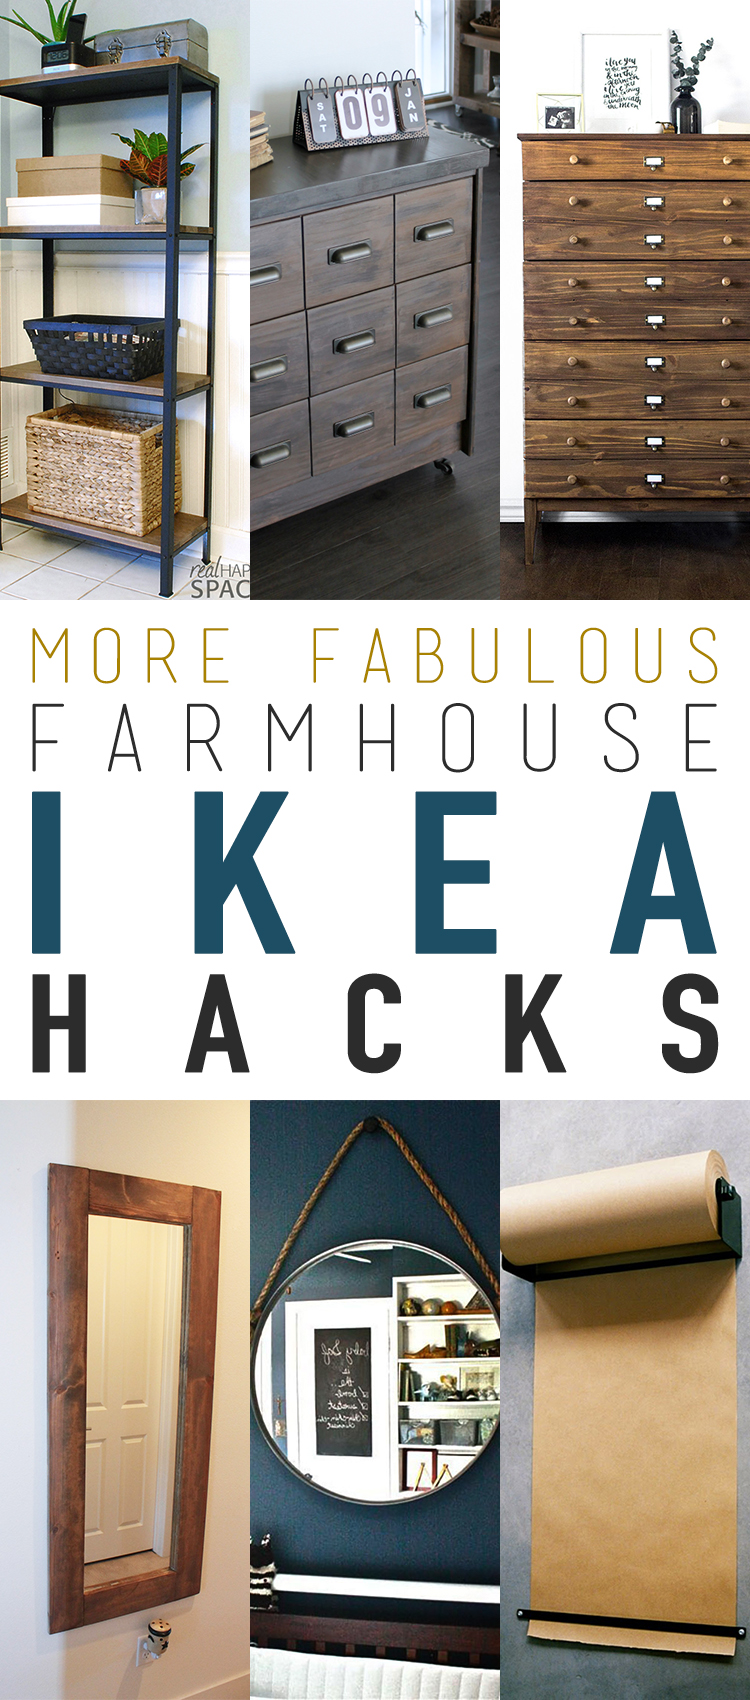 FarmhouseIkea-TOWER-0001